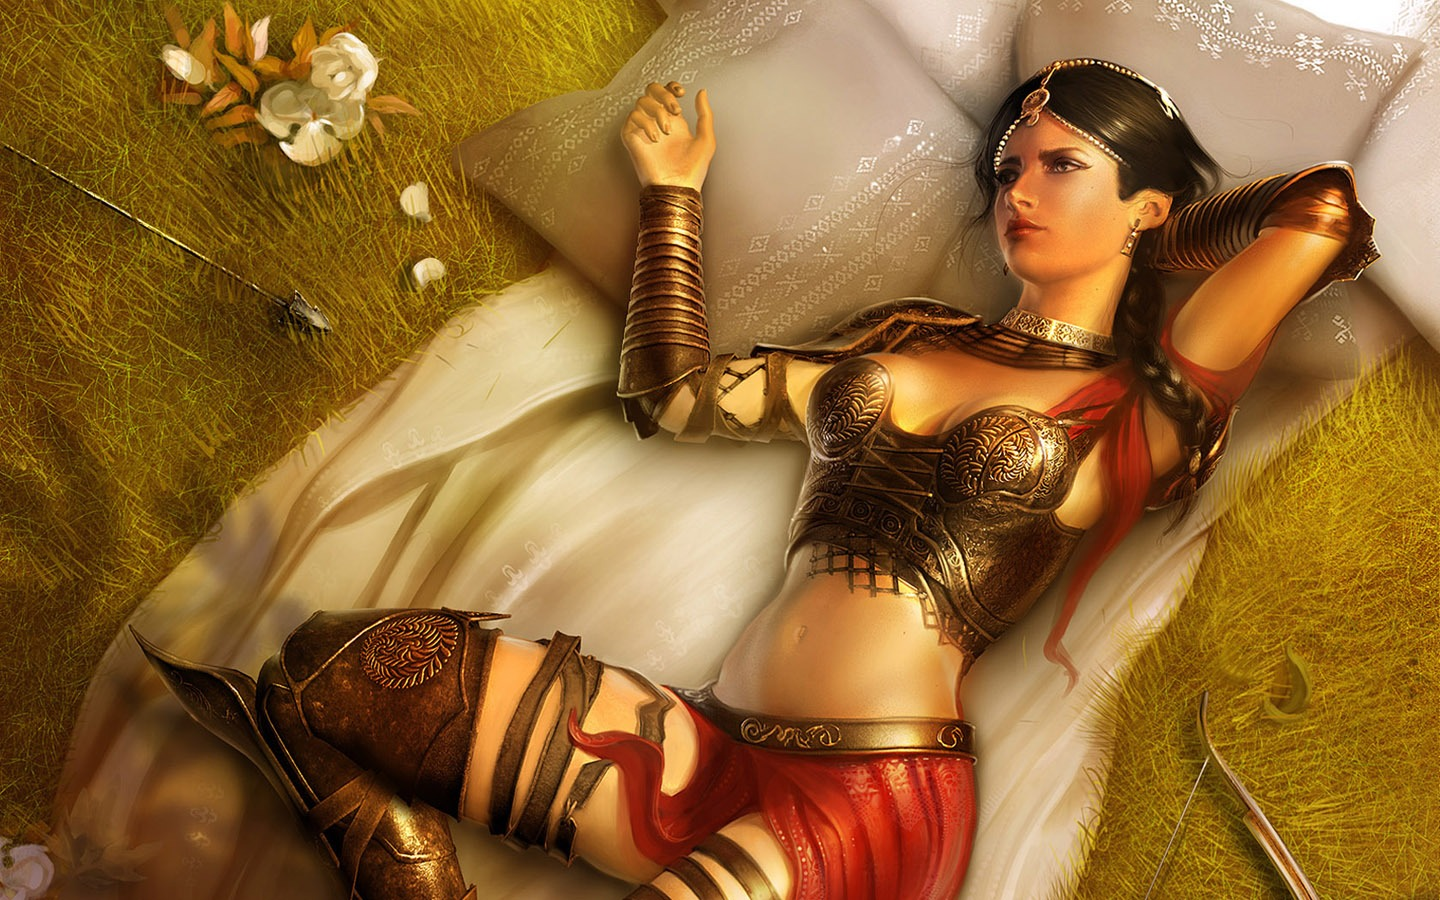 Erotic game mobile adult image